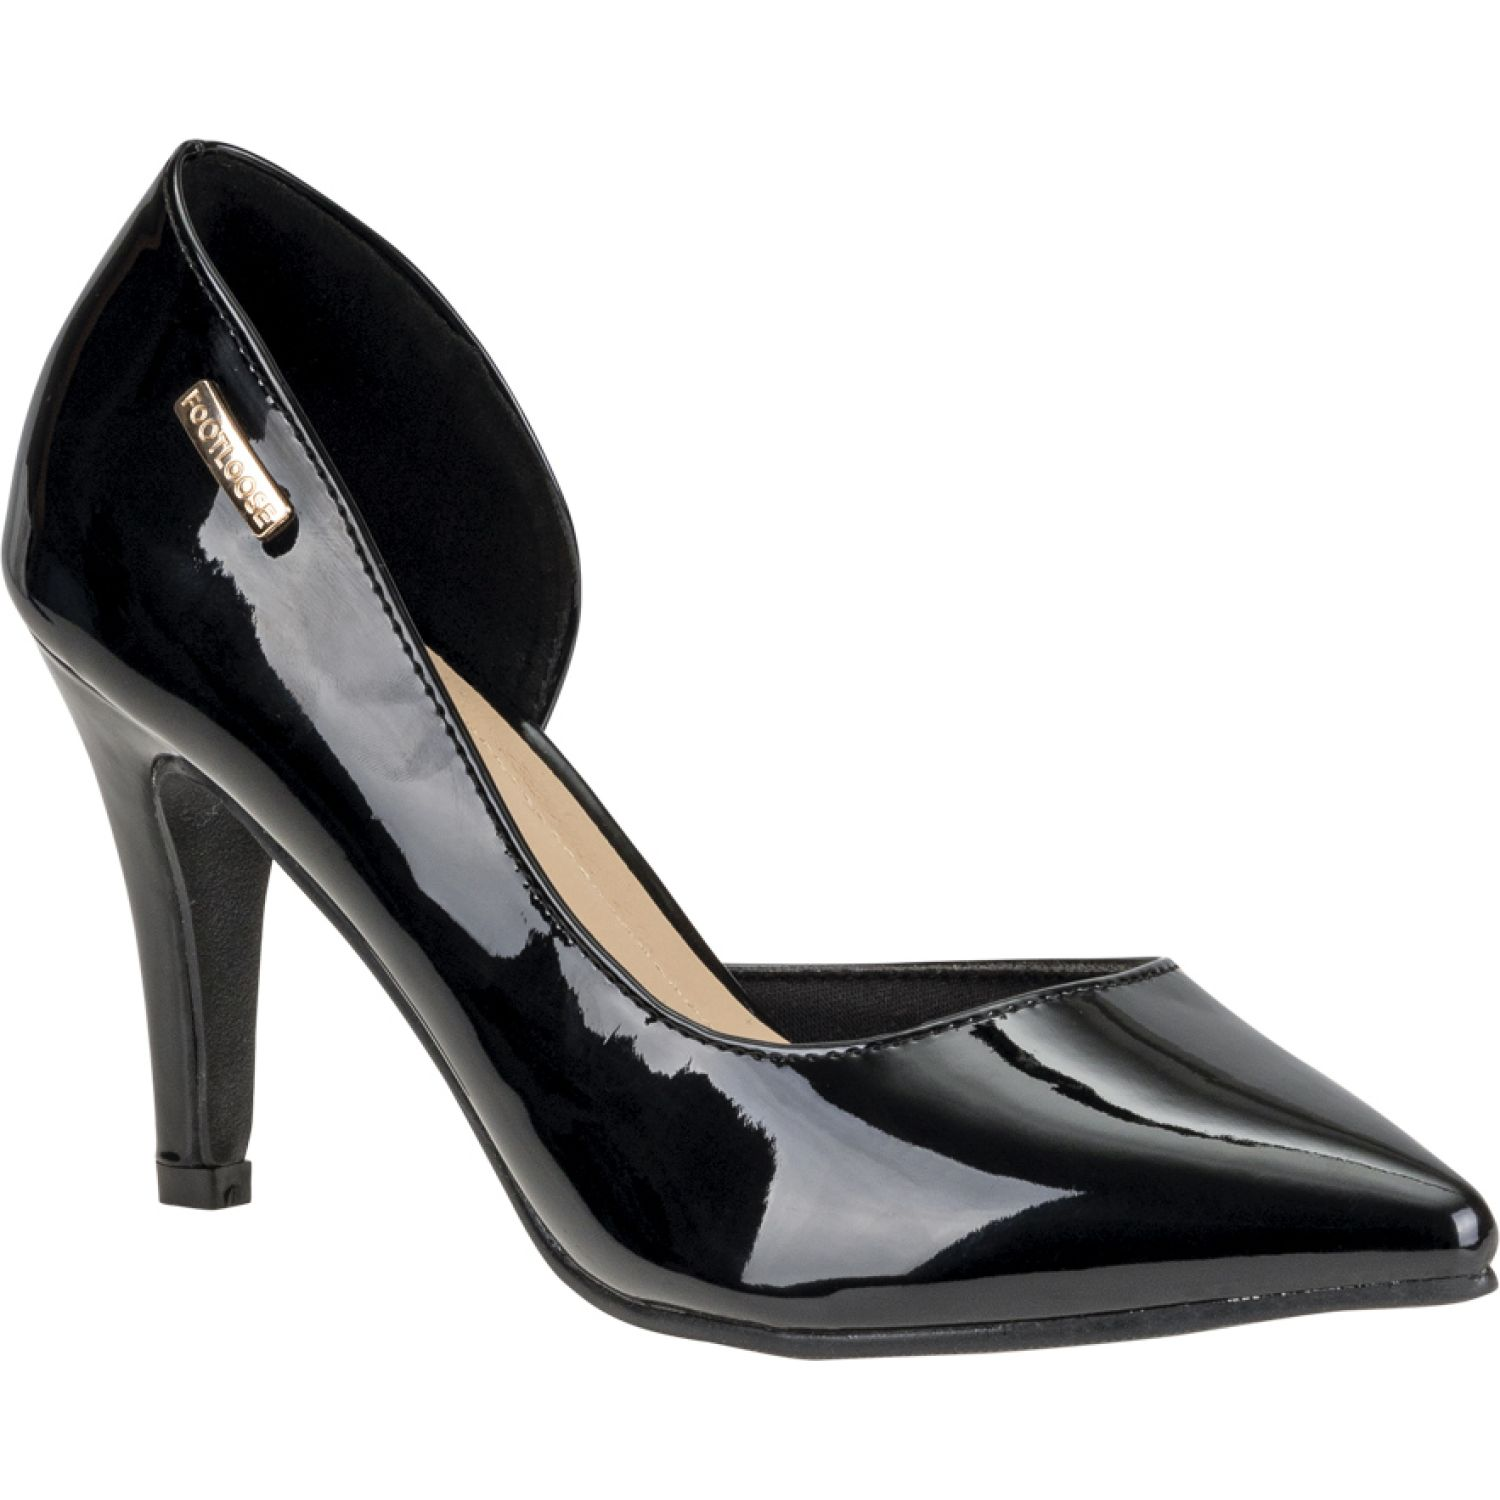 FOOTLOOSE Fch-Nn28i20 NEGRO Estiletos y pumps